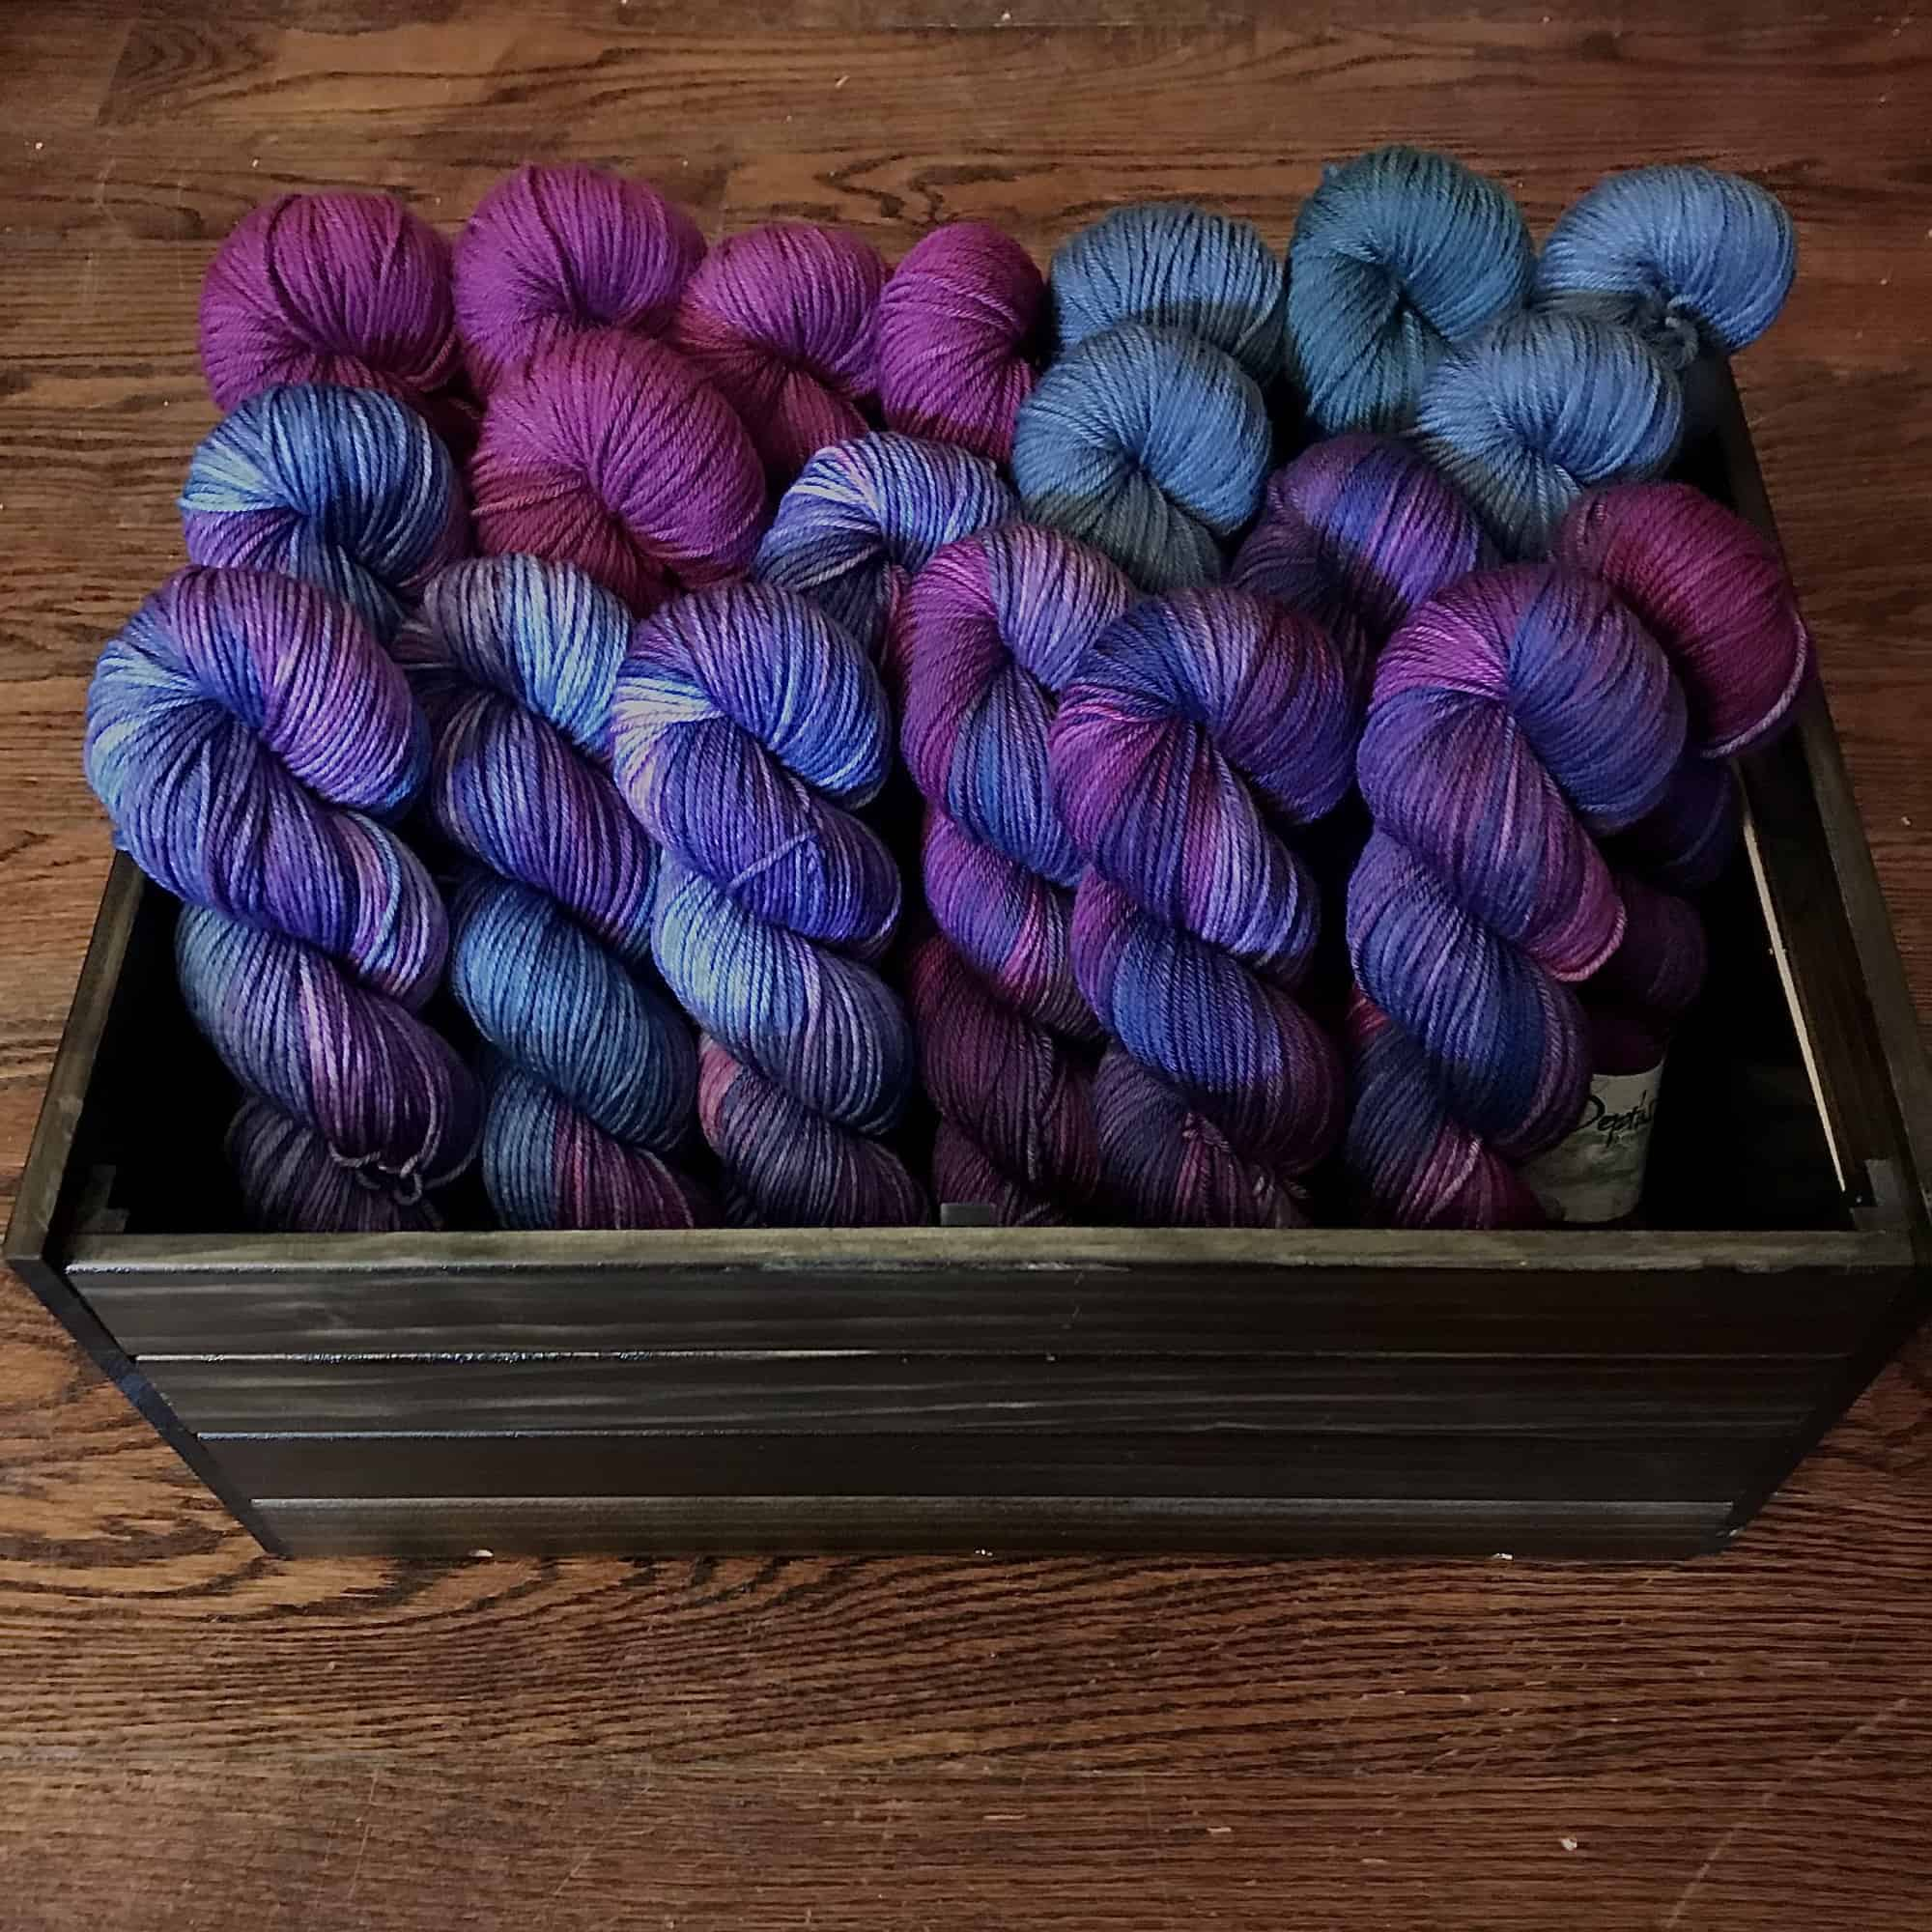 Skeins of purple and blue yarn.